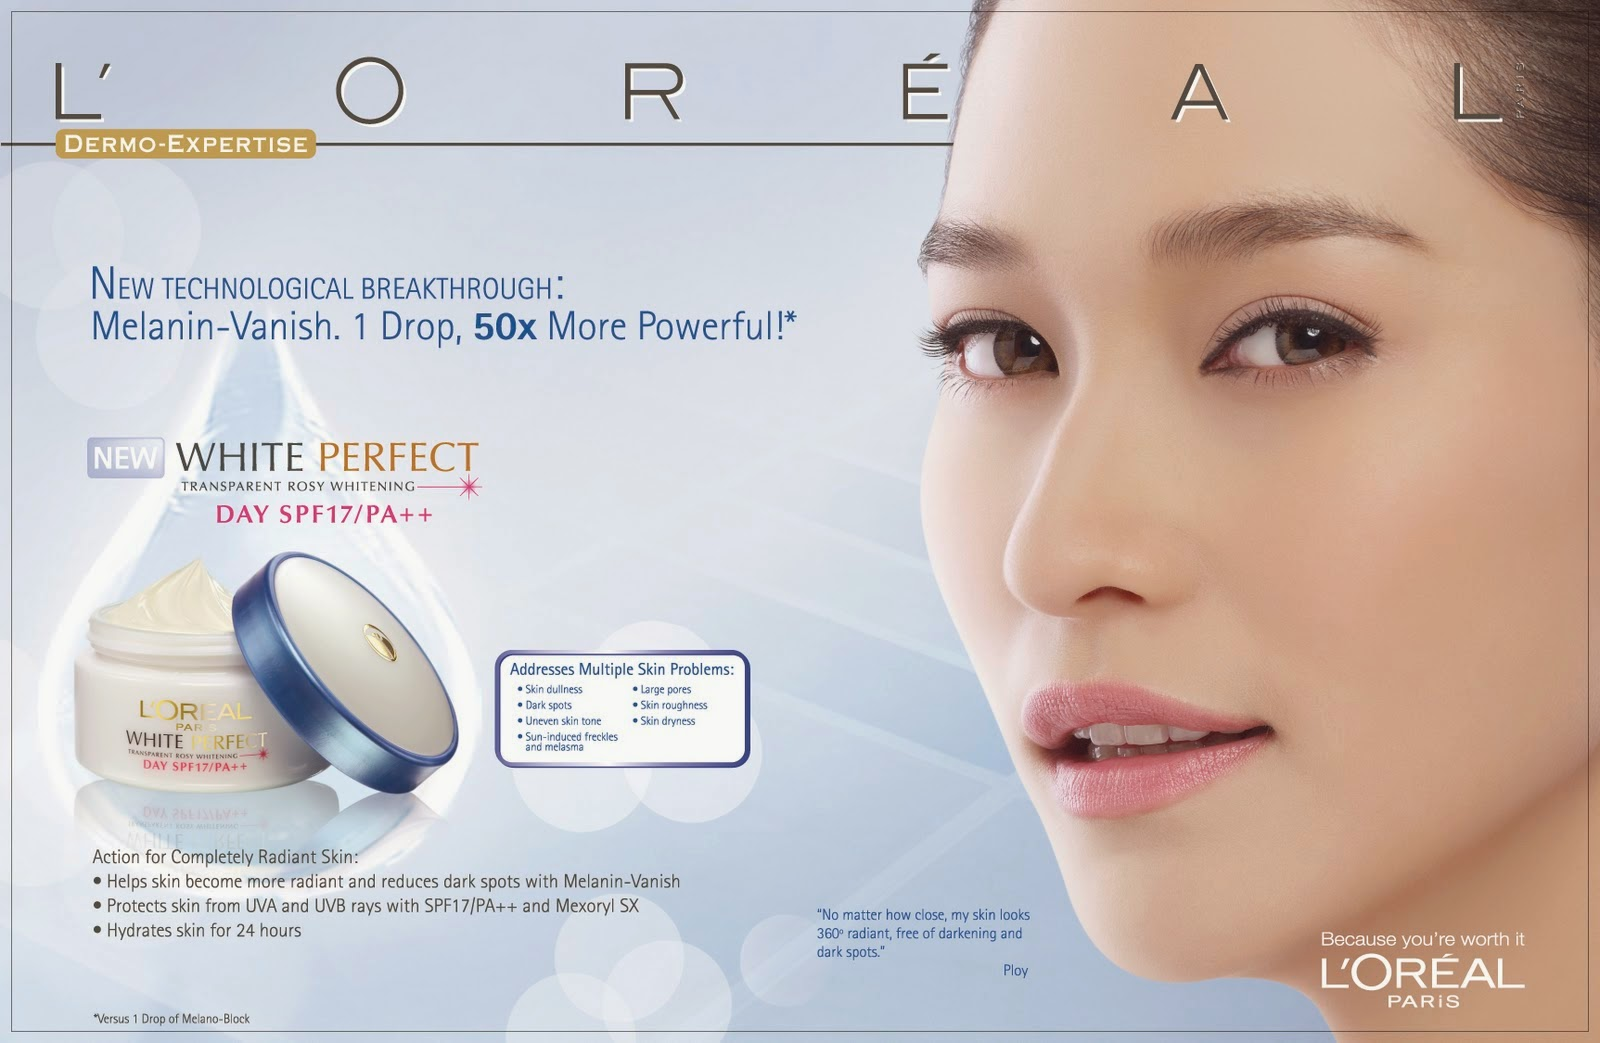 L'OREAL White Perfect DPS_17x11 3rd